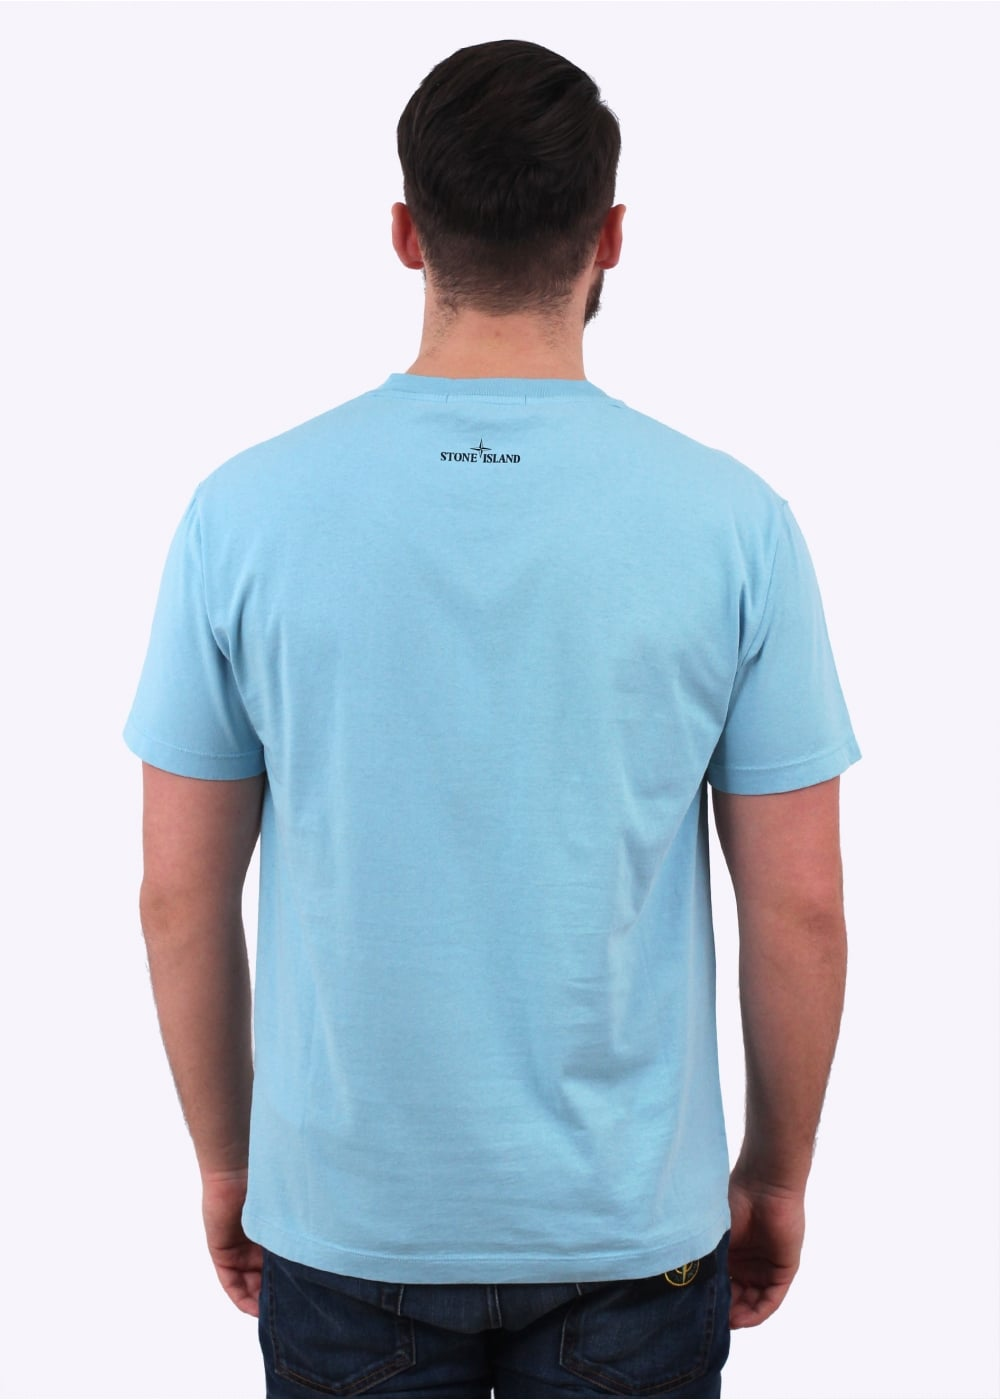 d5a3ef6e2194 Home · Triads Mens · T-shirts  Stone Island Graphic Tee - Sky Blue. Tap  image to zoom. Graphic Tee - Sky Blue